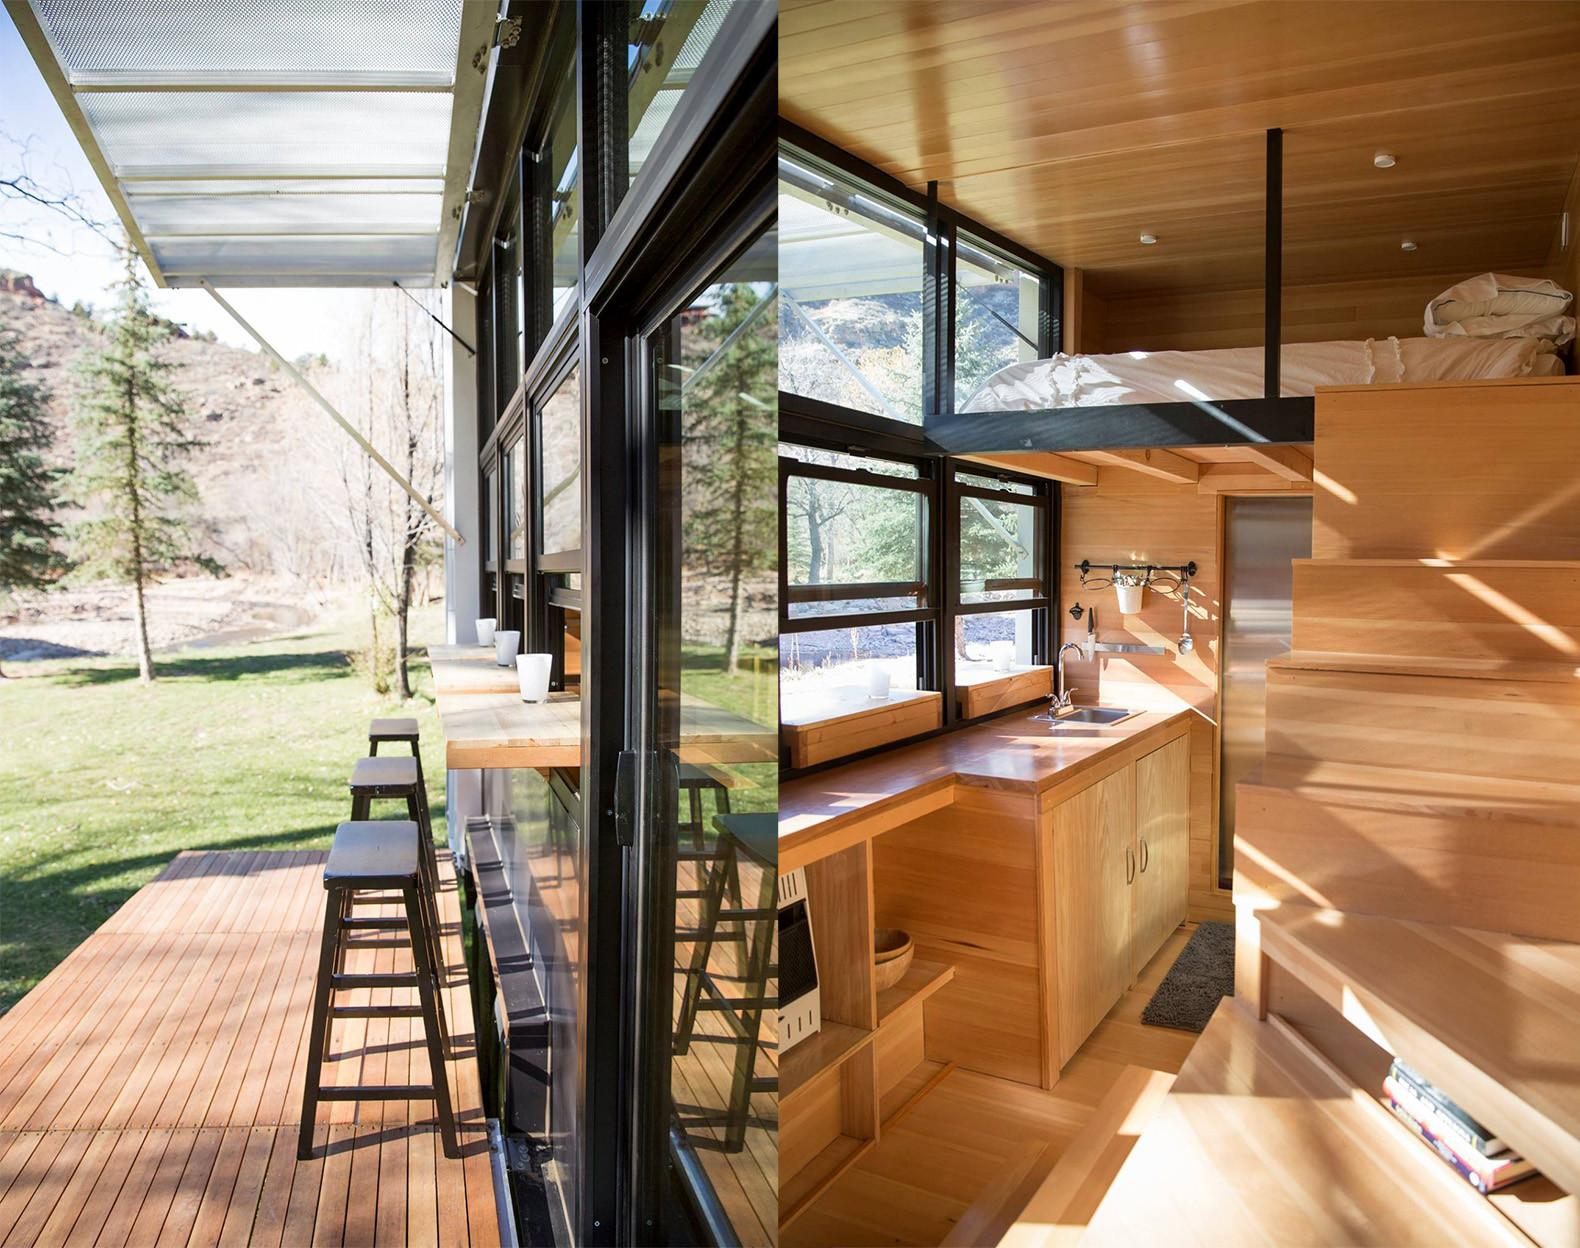 Tiny Towable Eco Home Helps Reconnect Nature